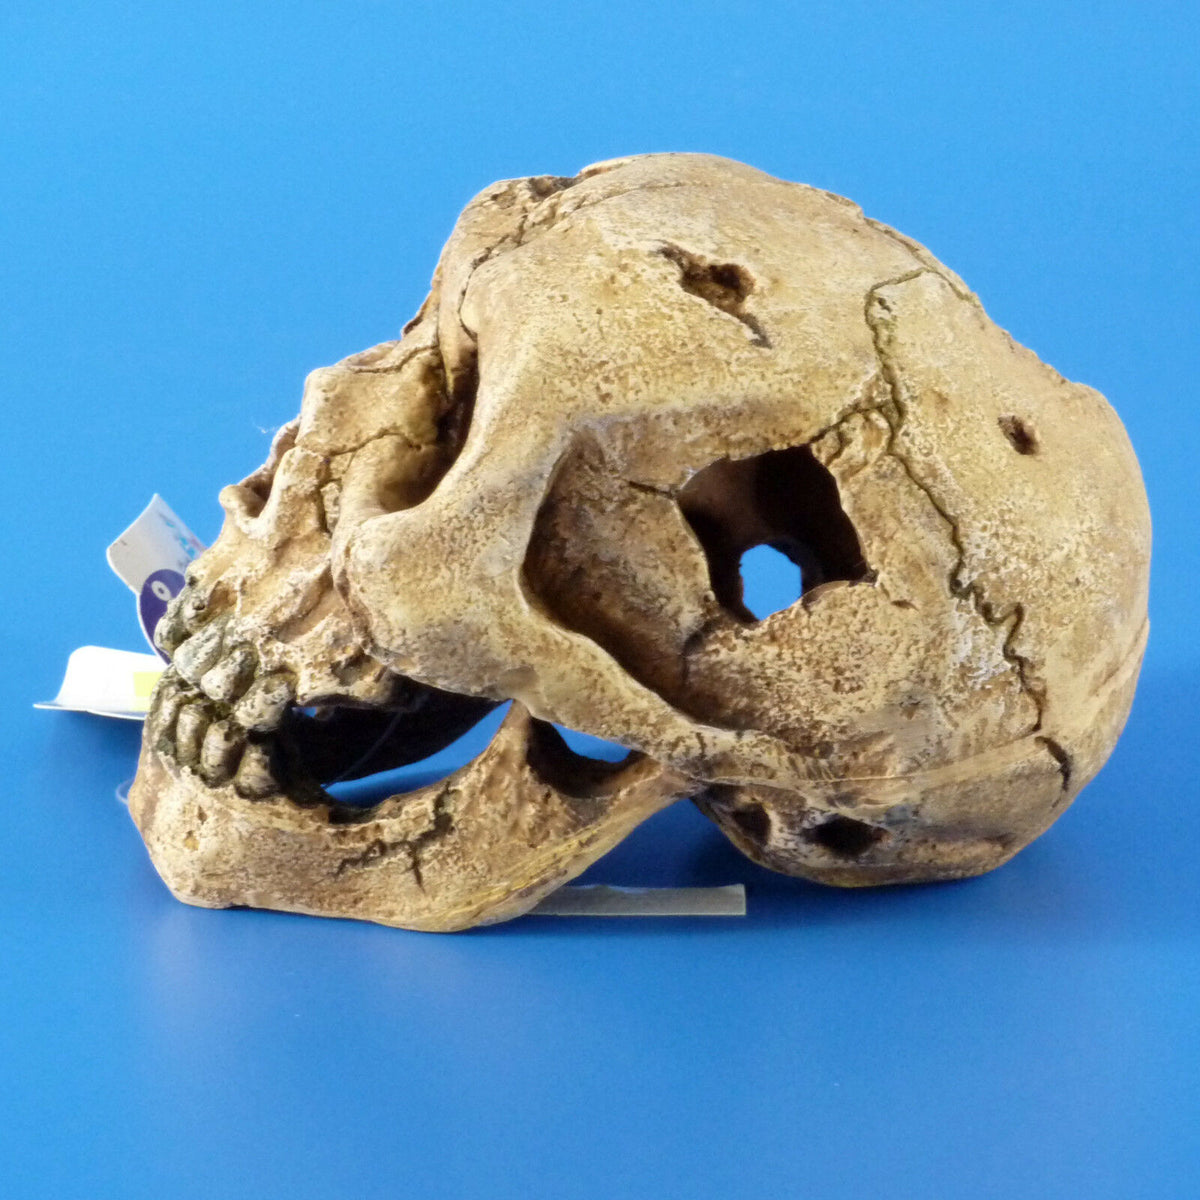 New Kazoo Skull Medium Aquarium Ornament